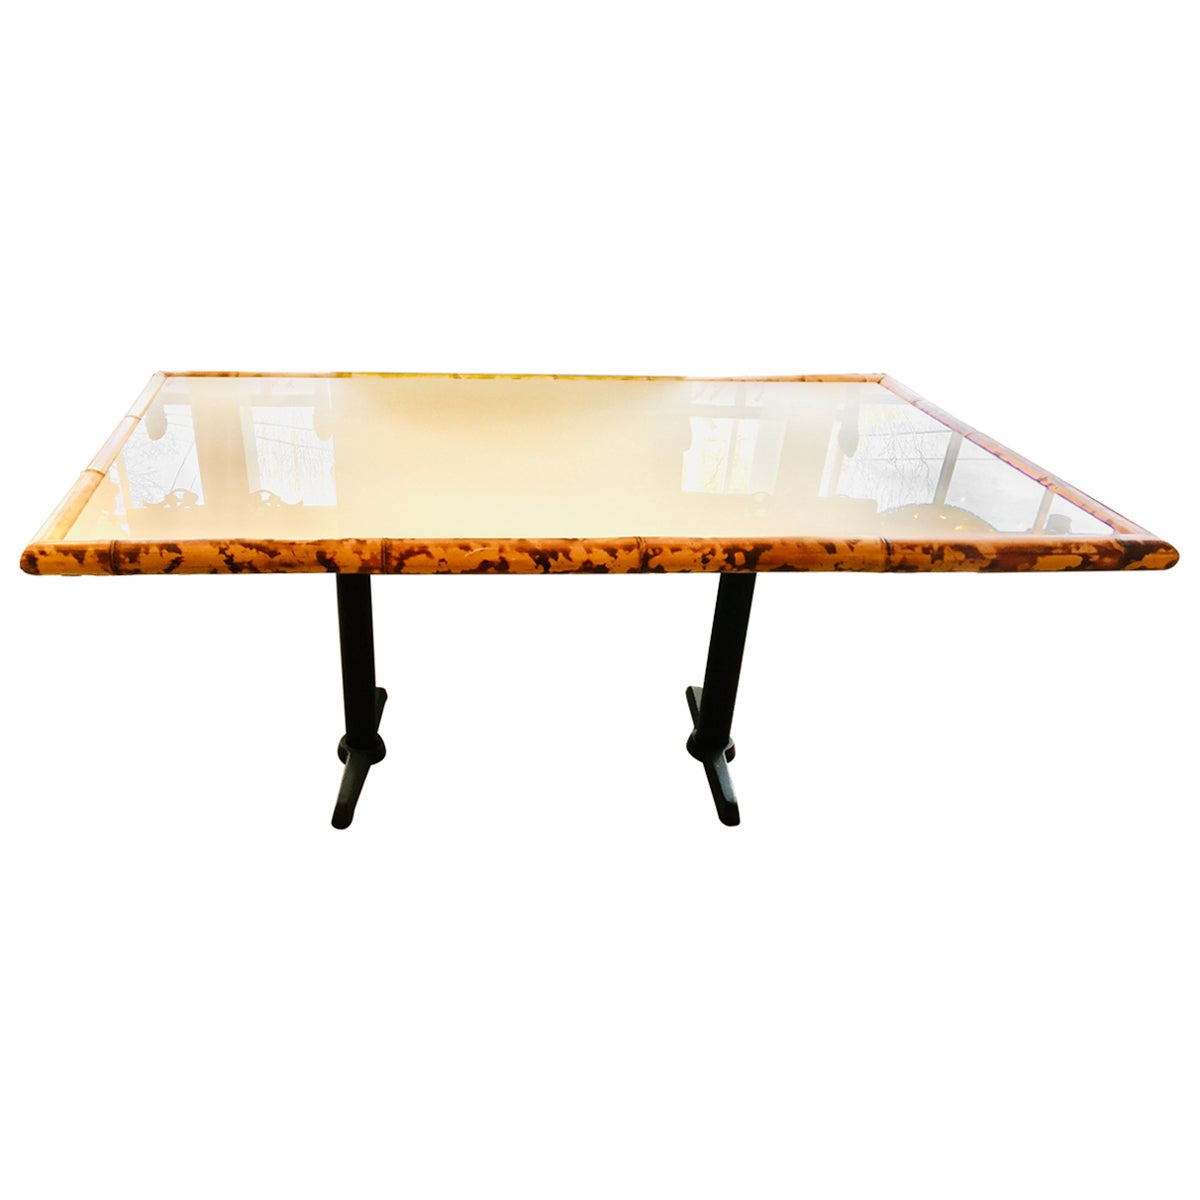 American Bamboo and Wooden Dining Table on Metal Base